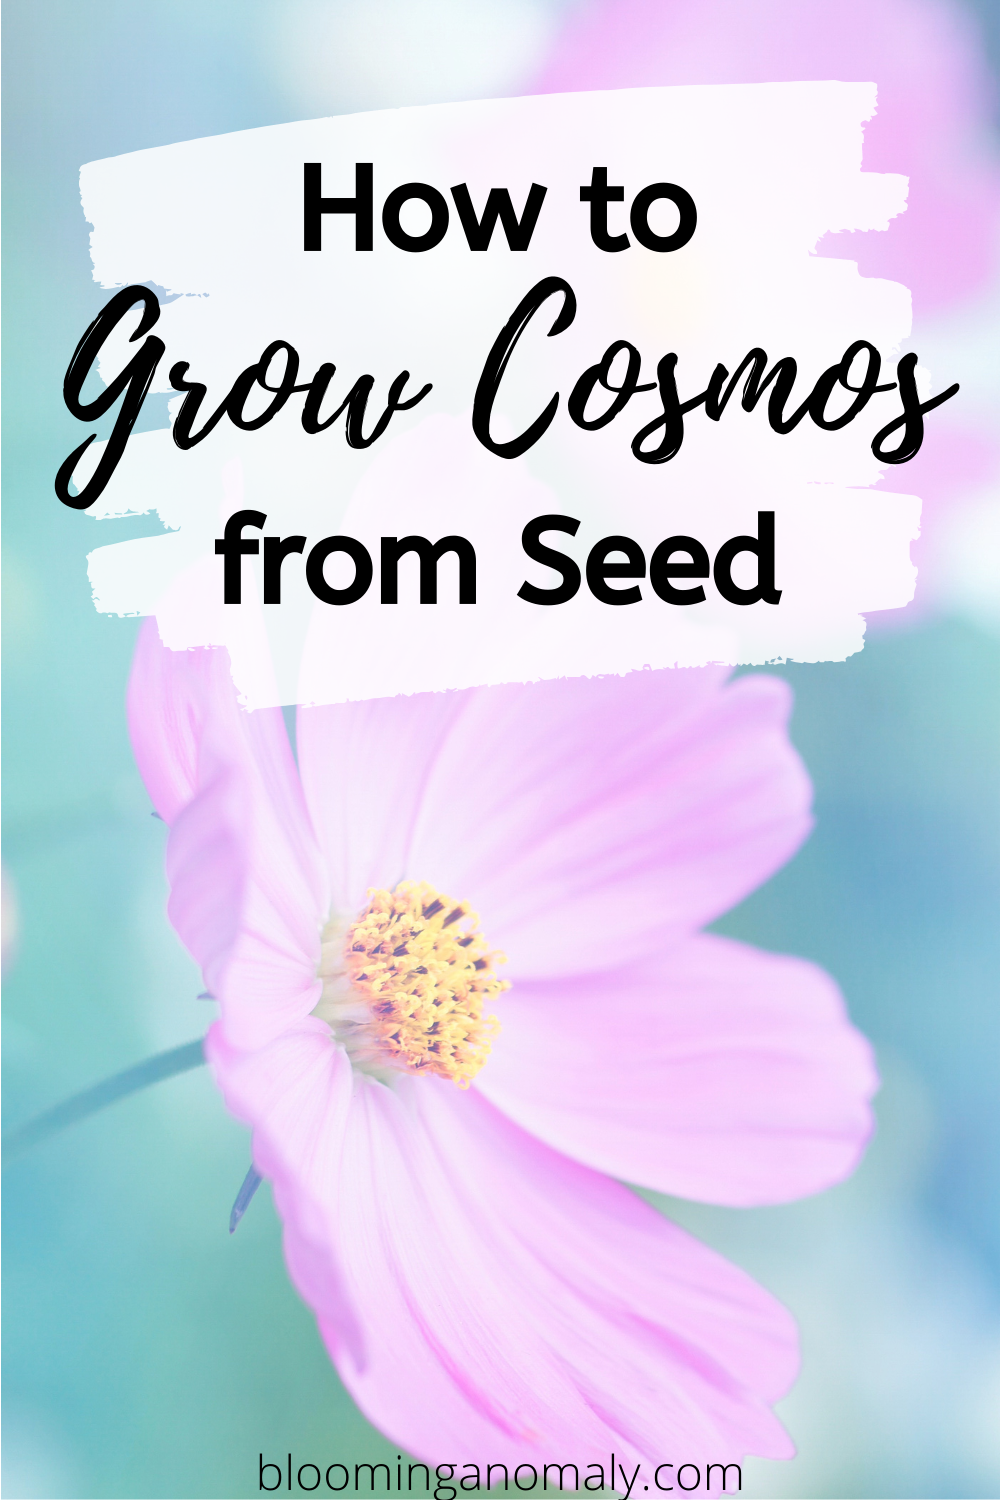 How To Grow Cosmos From Seed In 2020 Cosmos Flowers Easiest Flowers To Grow Gardening For Beginners